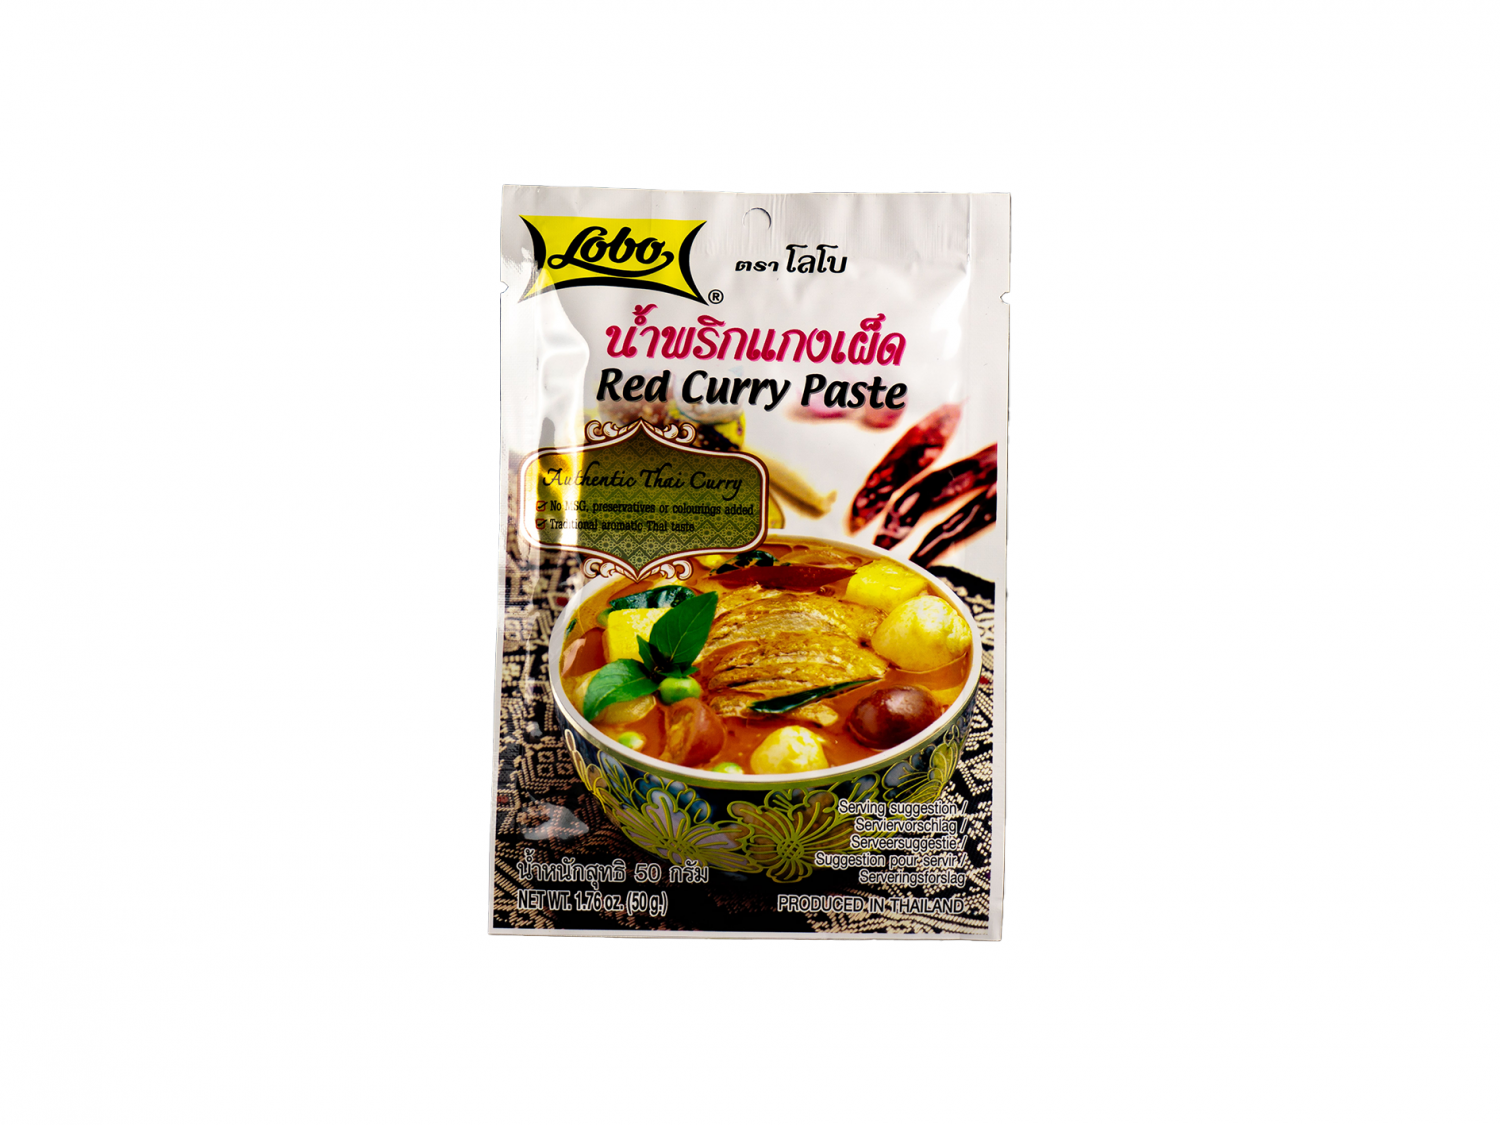 Rotes Curry Lobo Paste kaufen